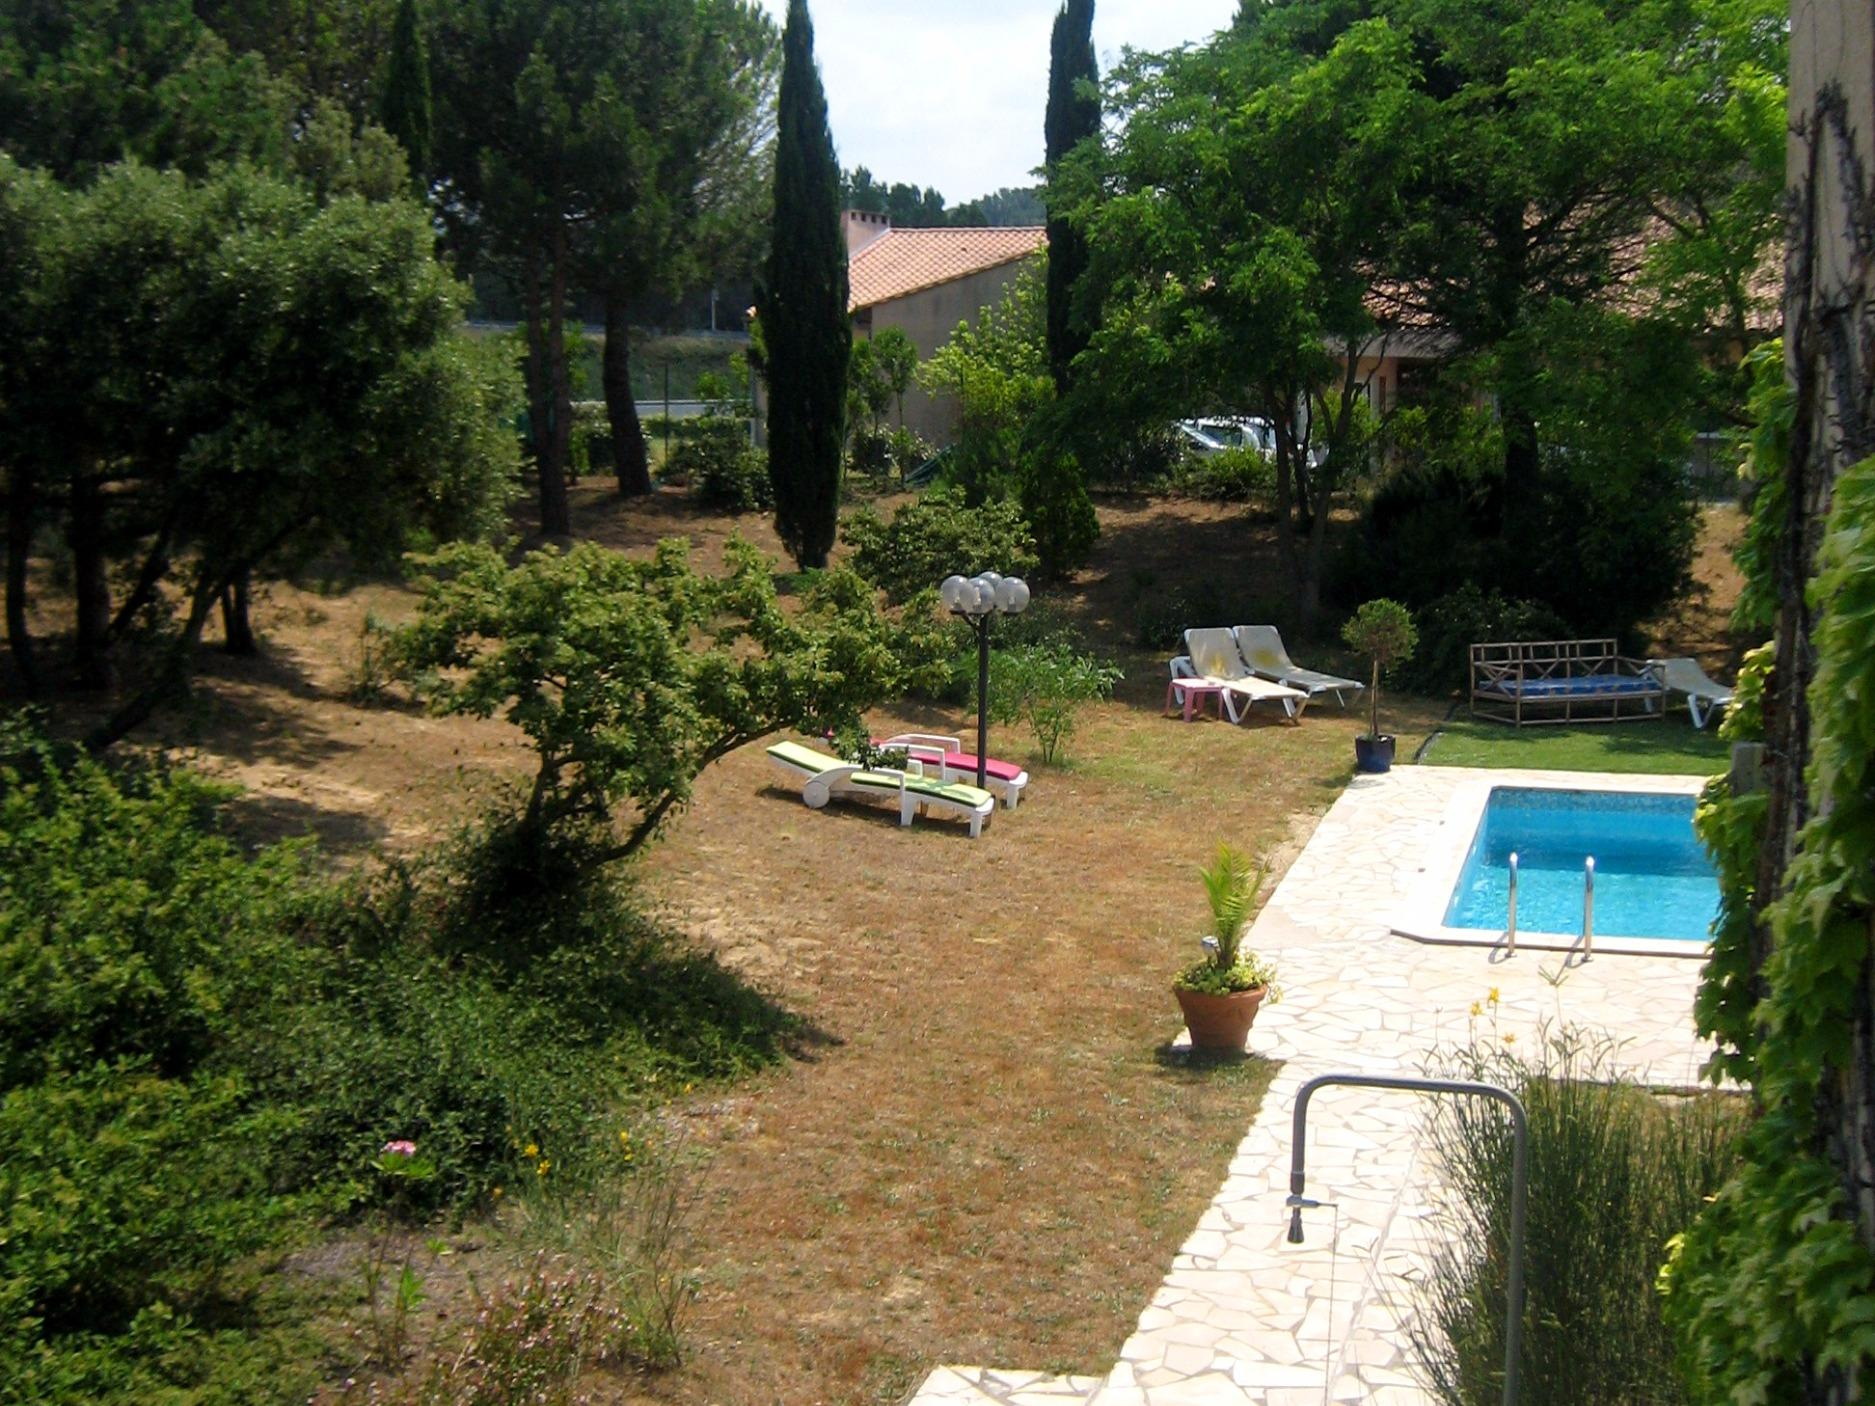 Hotel la gentilhommi re tr bes for Piscine trebes